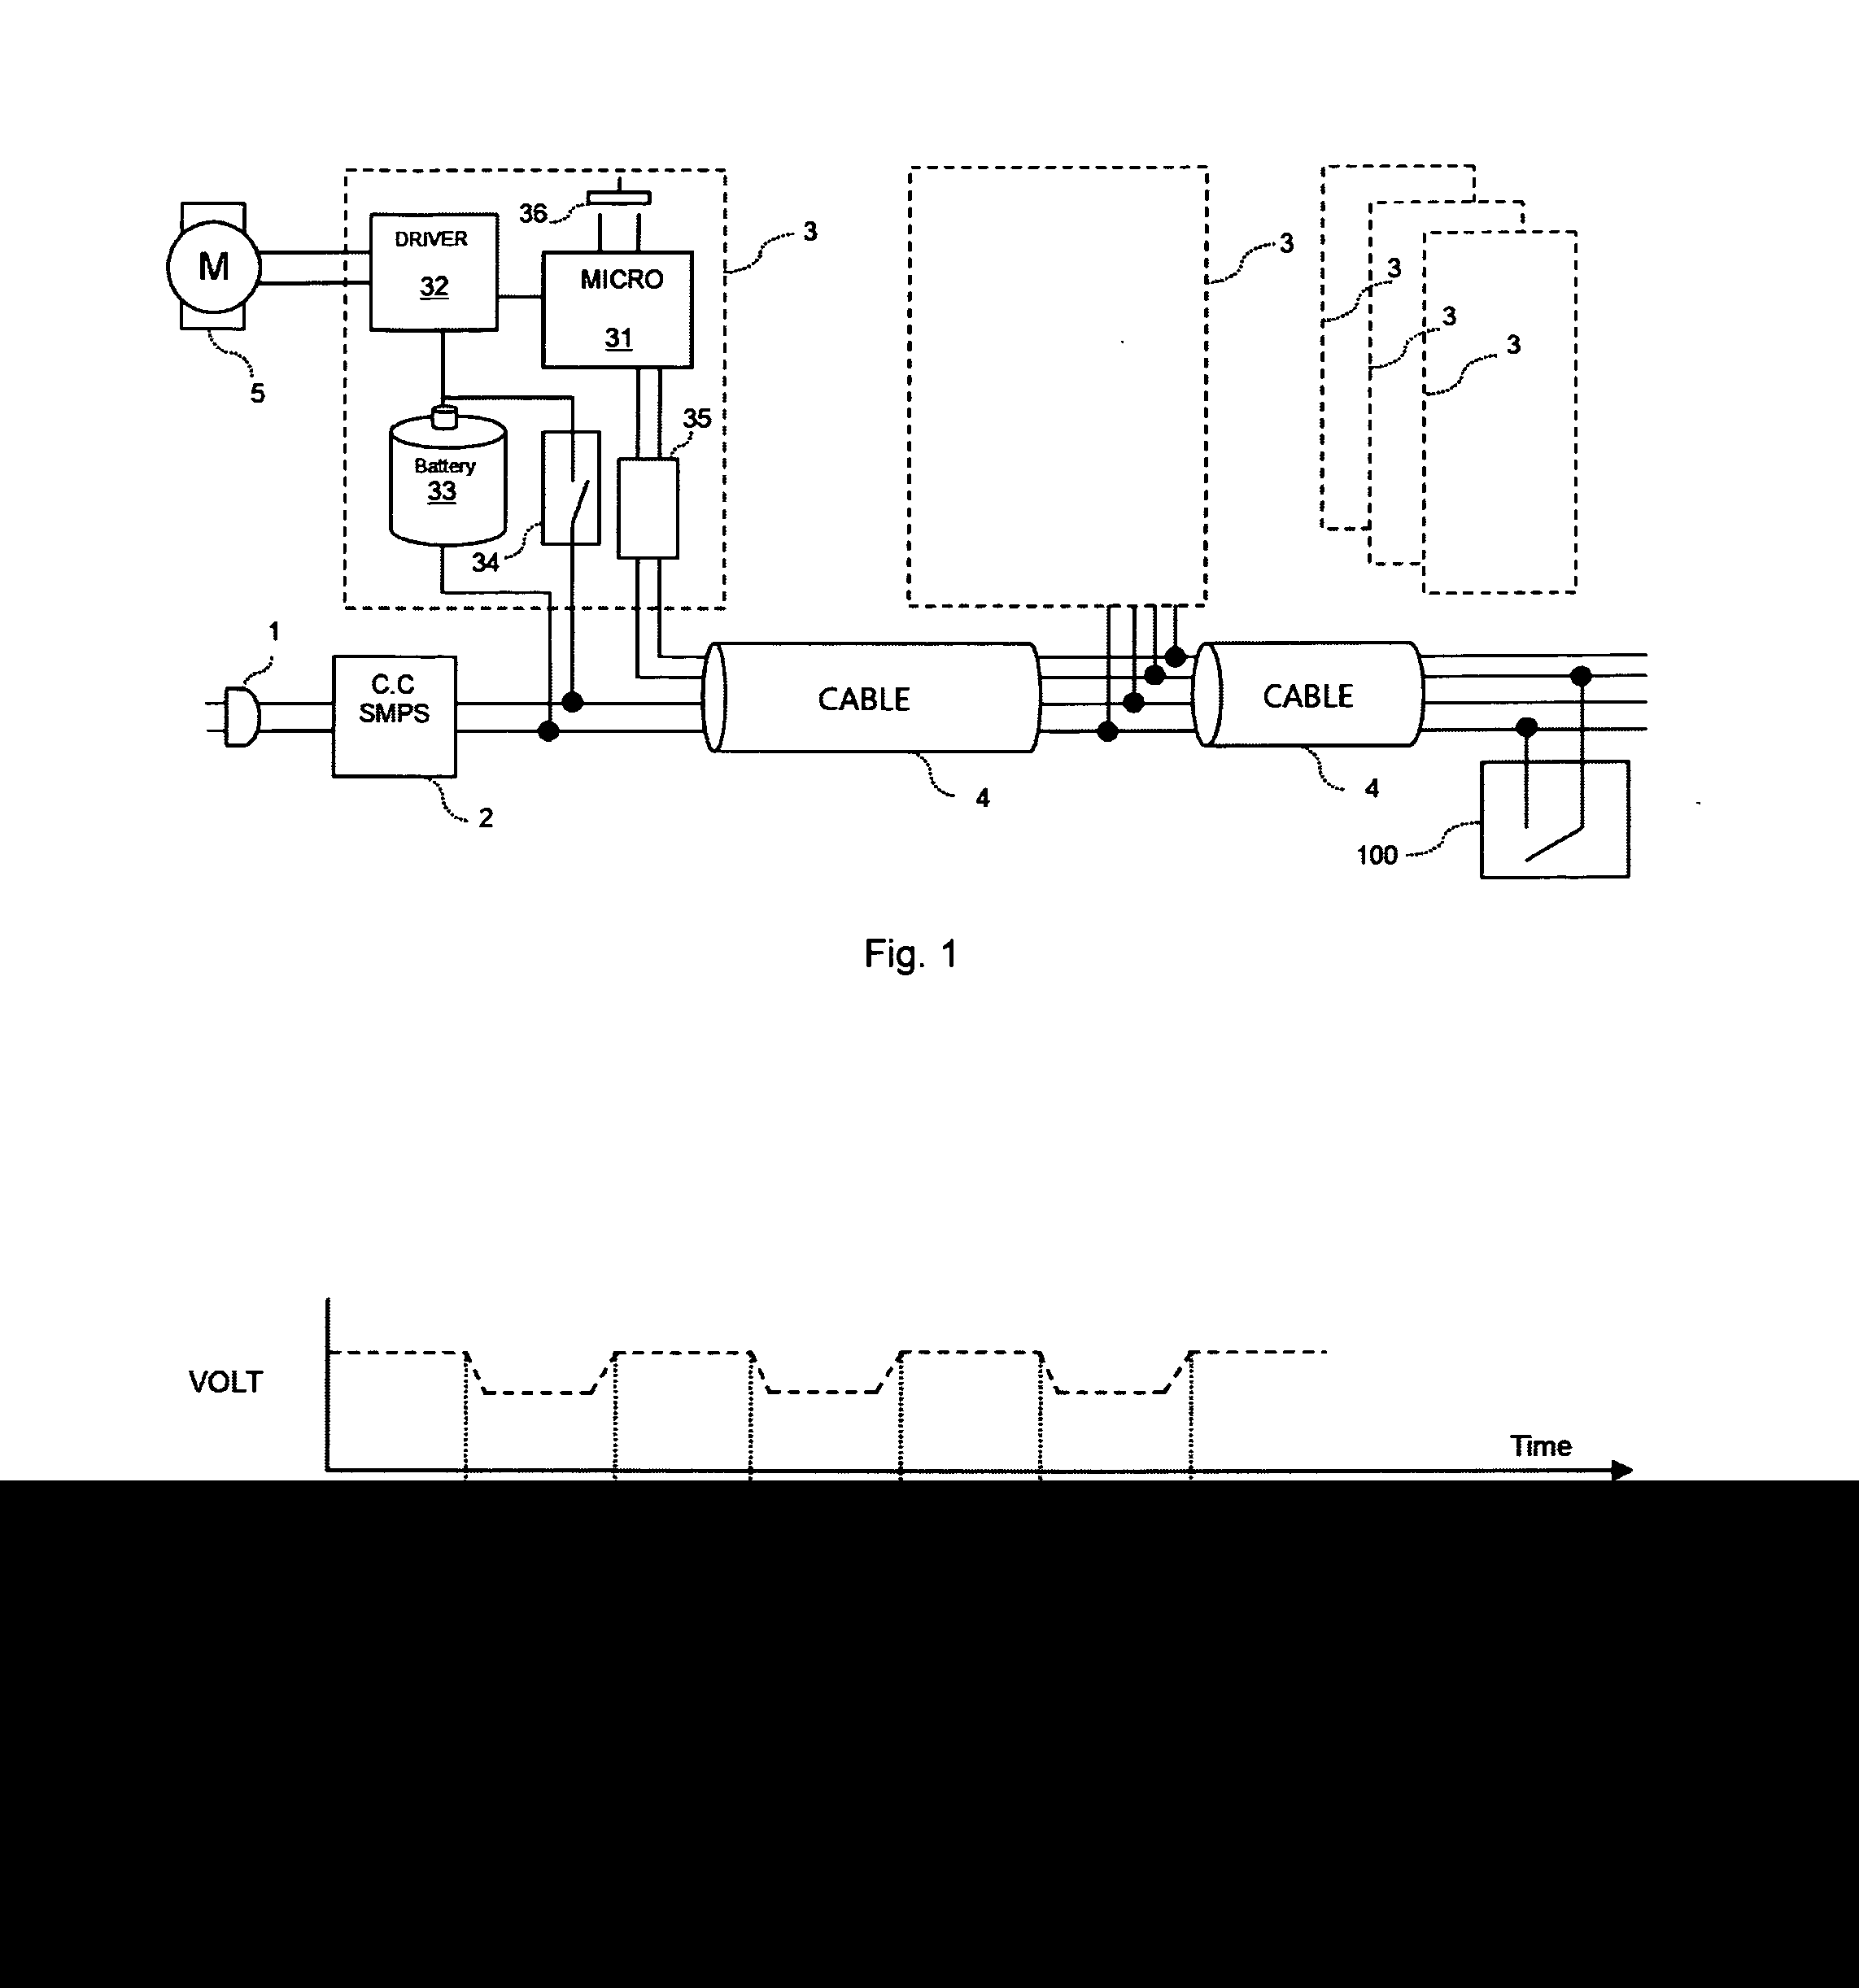 US20140352896A1 20141204 D00001 patent us20140352896 network roller shutters google patents roller shutter motor wiring diagram at gsmx.co